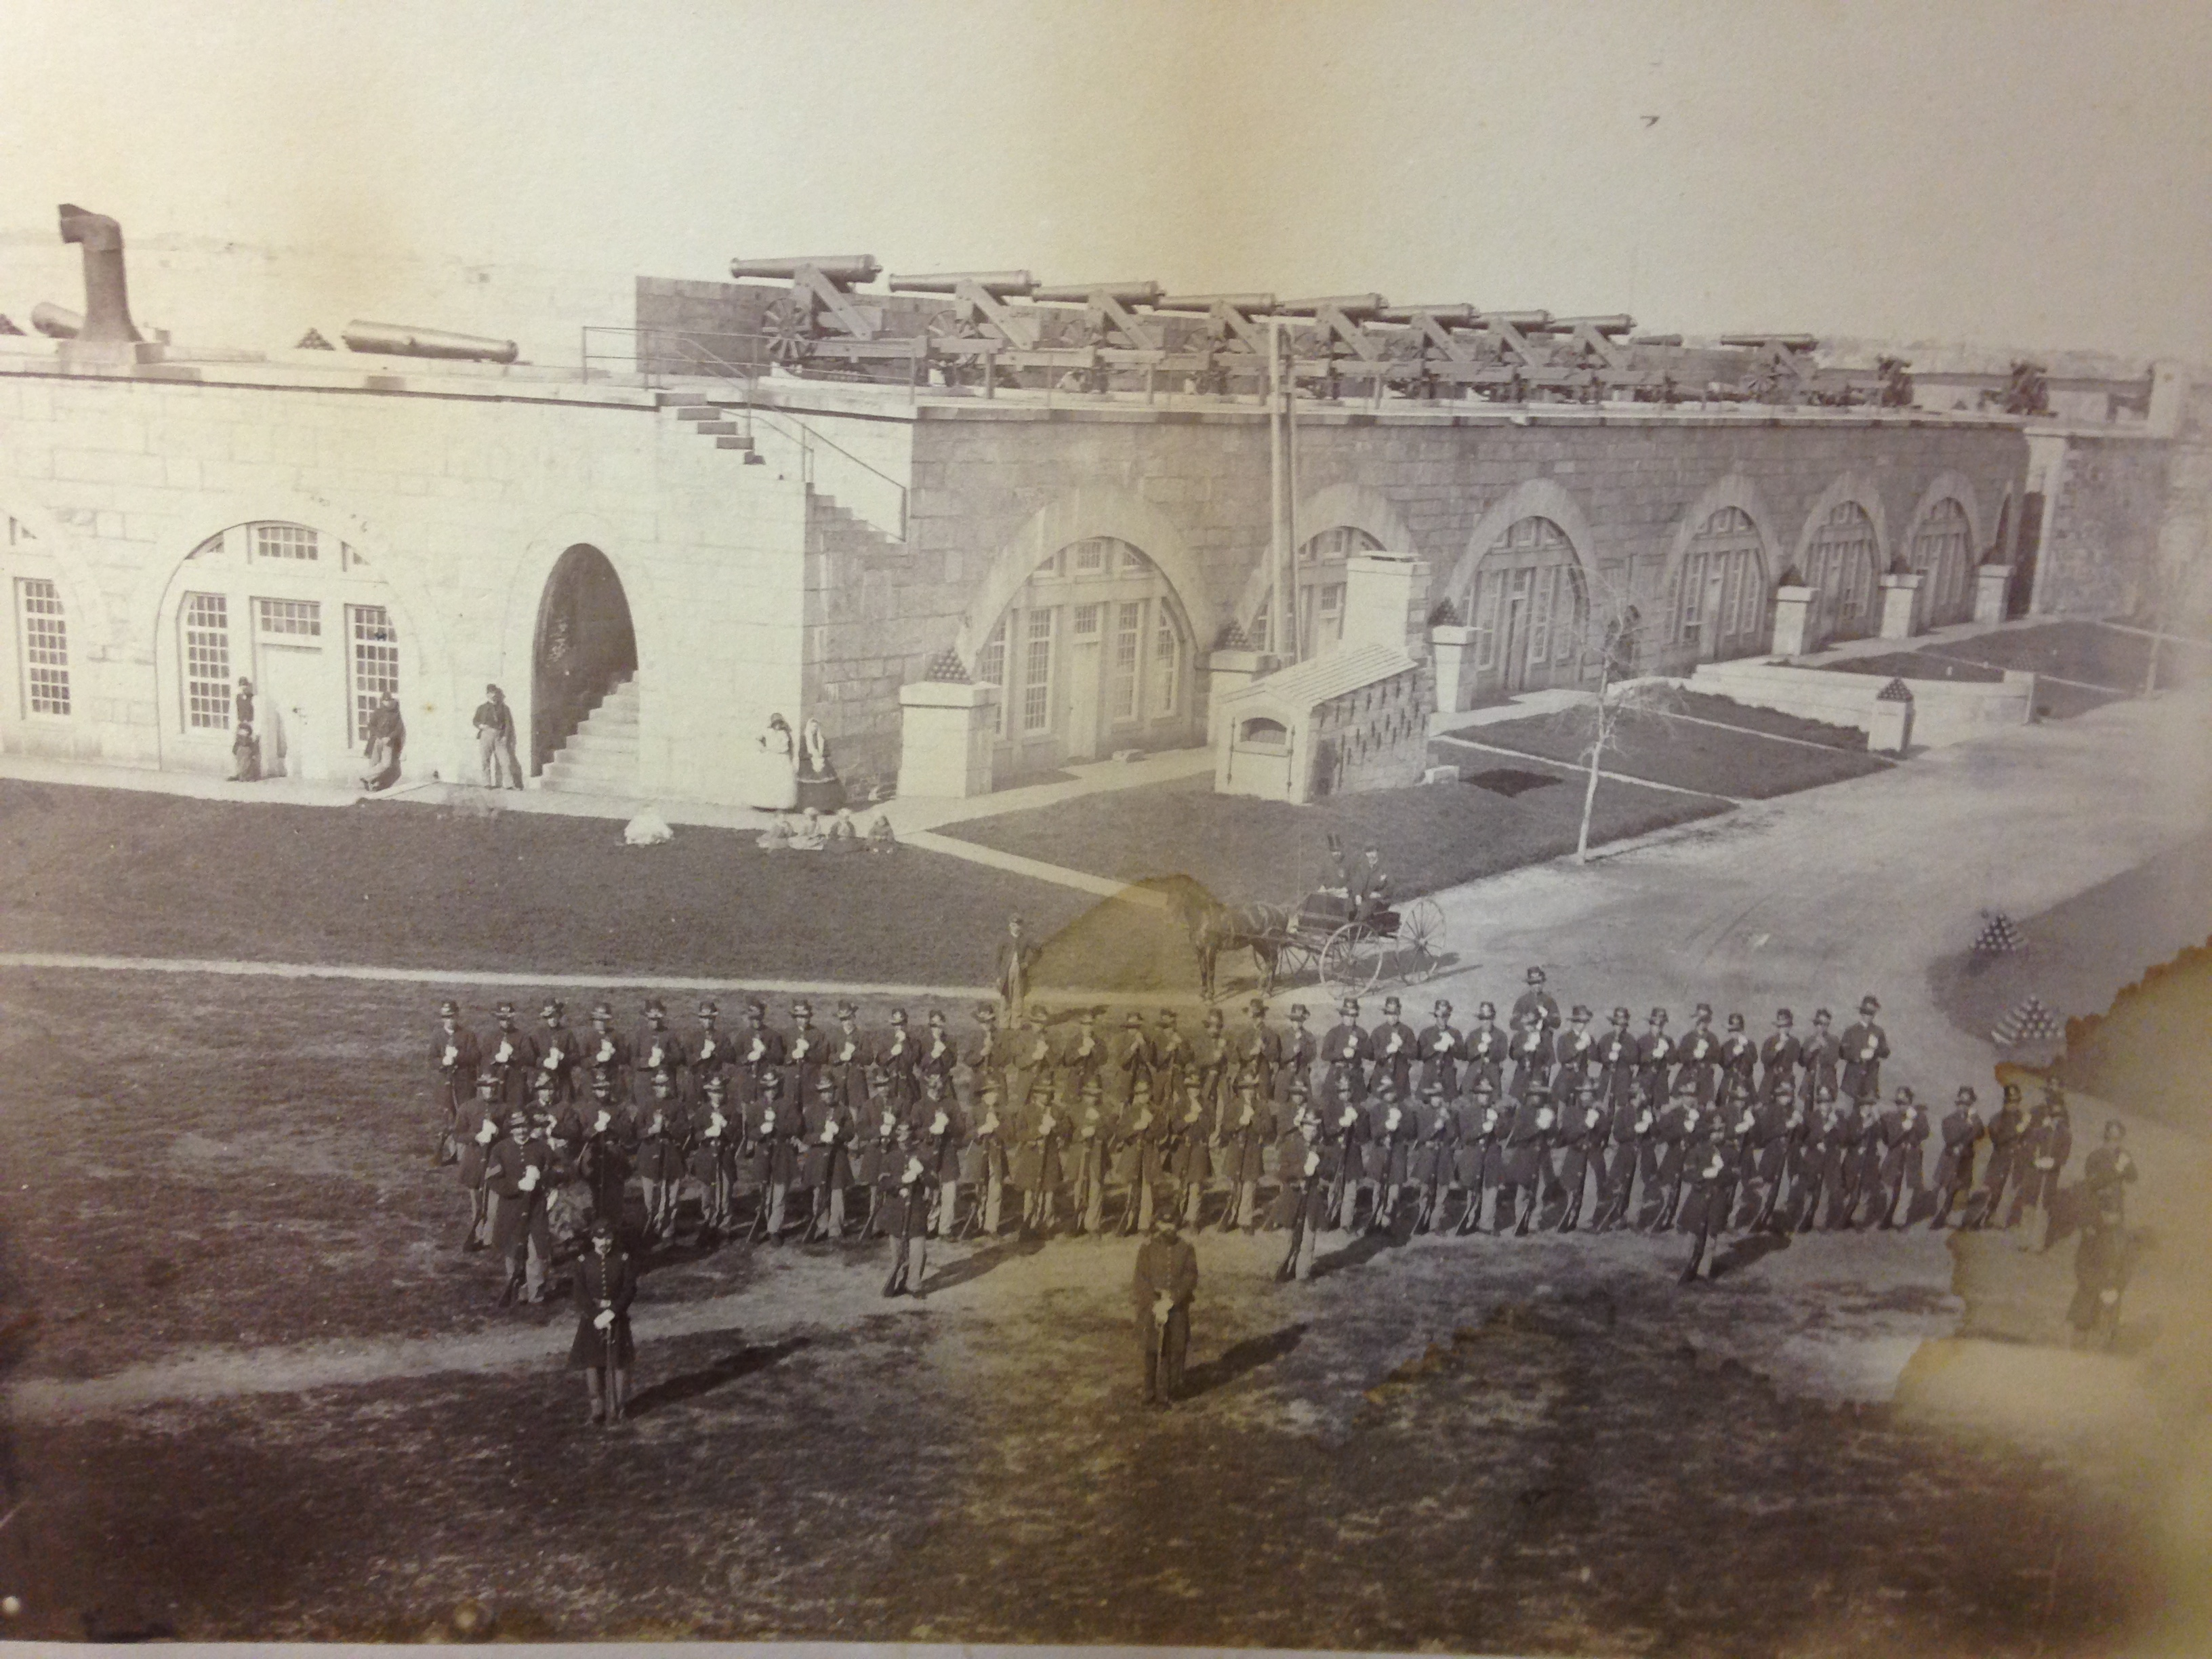 NCA Discovers and Donates Rare Image to Fort Adams Trust